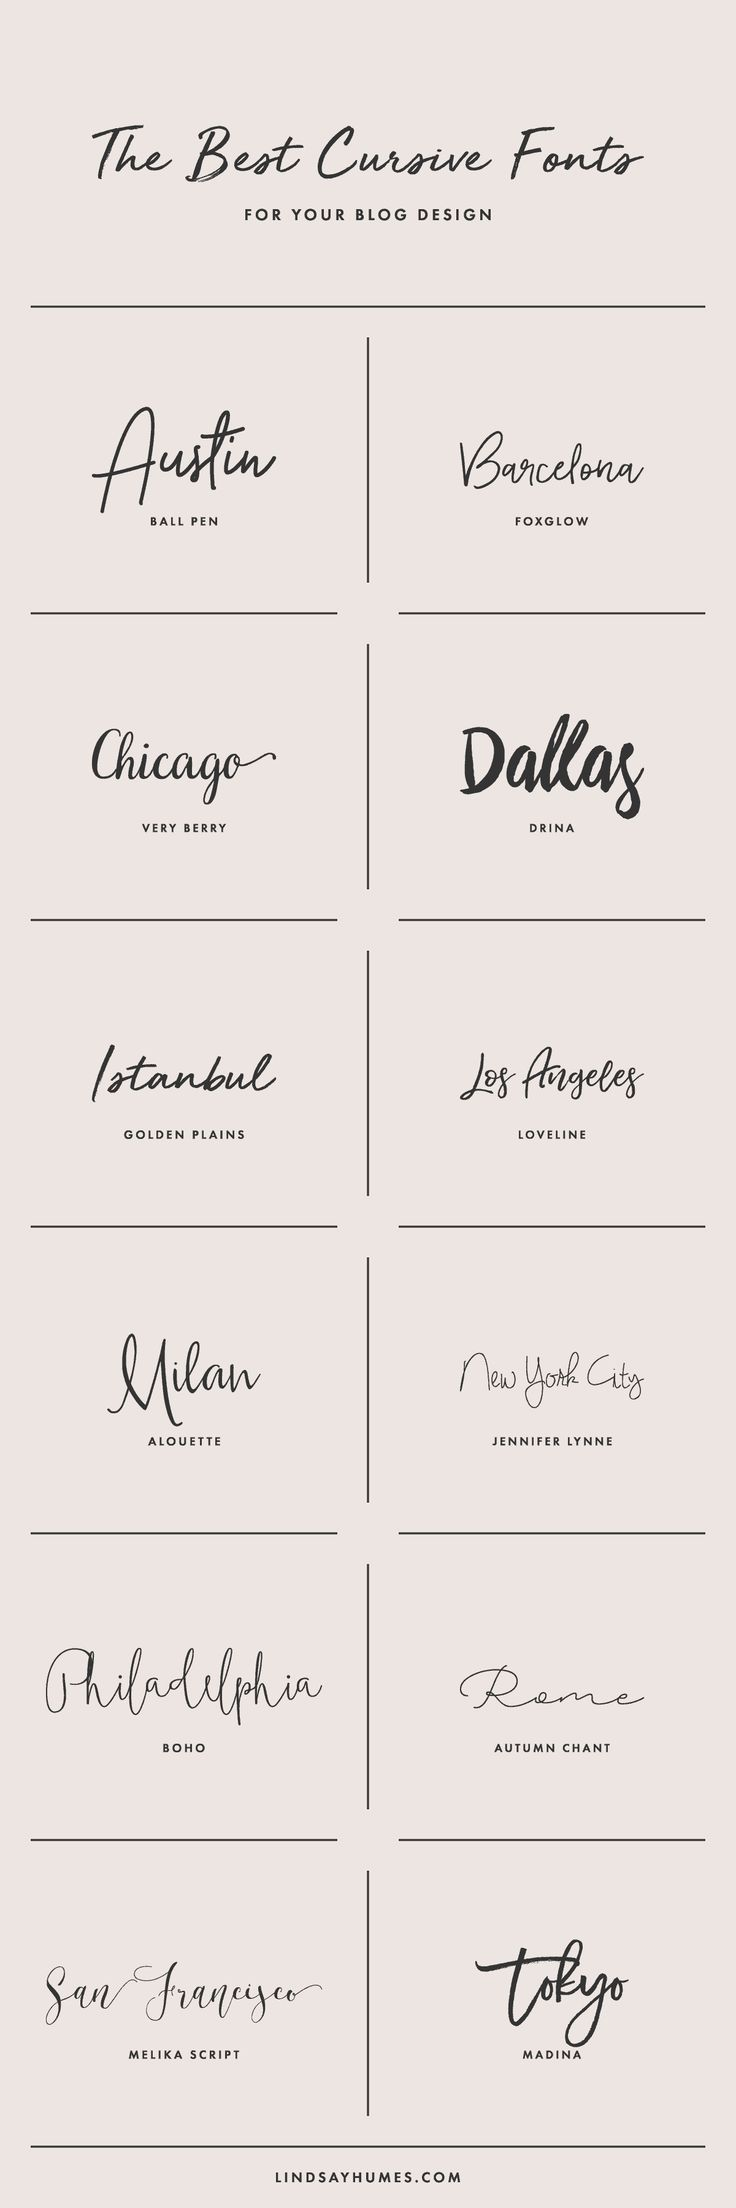 How to Use Cursive Fonts in Your Blog Design #filmposterdesign